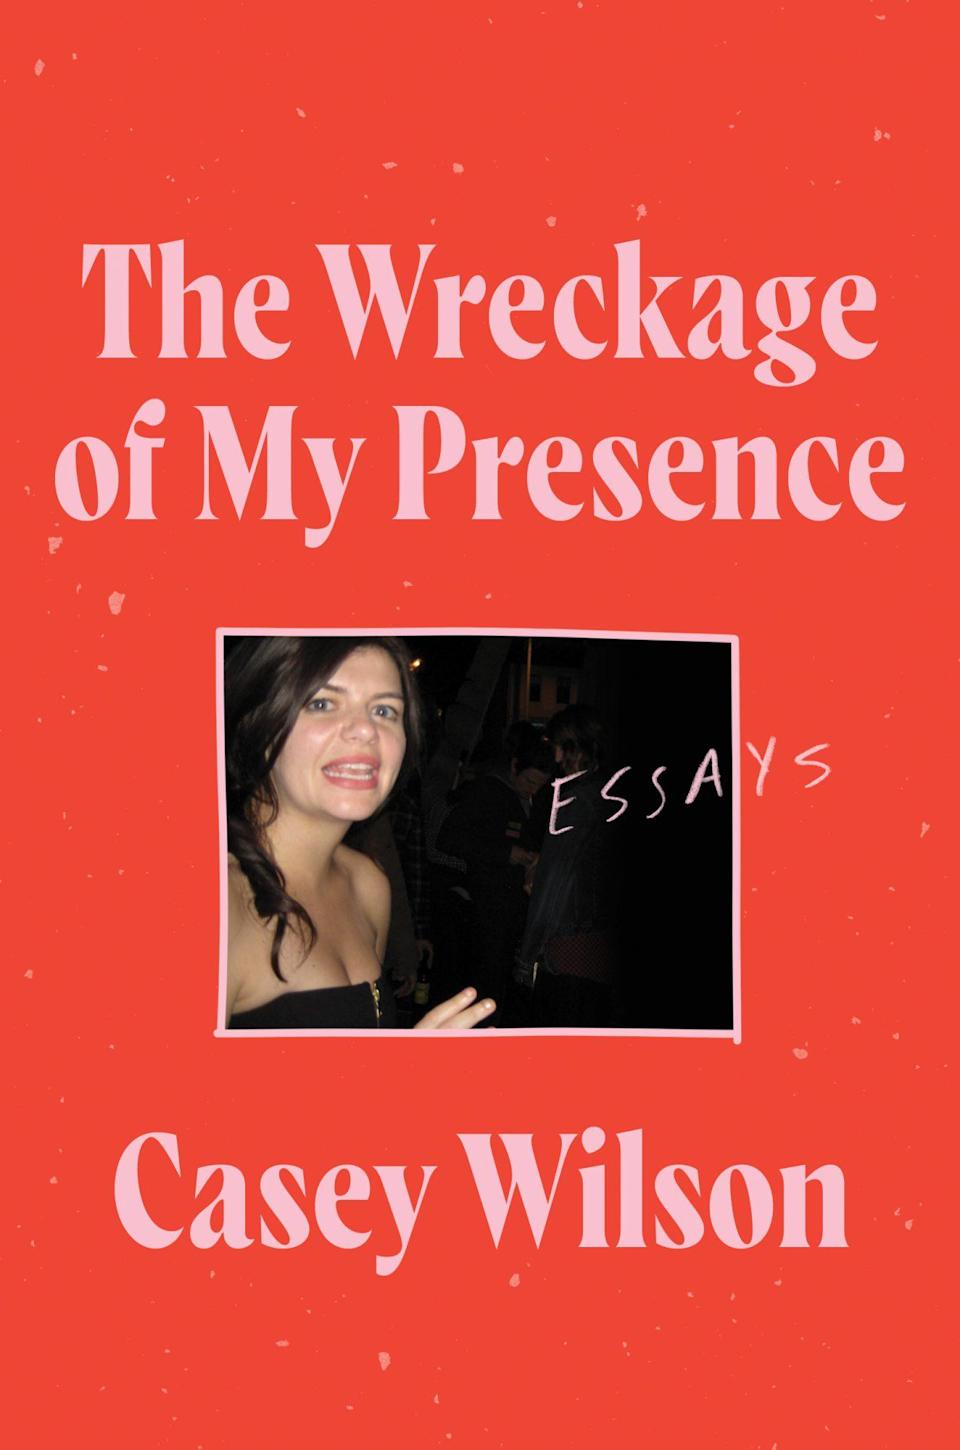 """<p>The comedian, podcast host, and — perhaps most notably — <em>People</em>'s Most Beautiful 40-year-old pens <a href=""""https://ew.com/books/author-interviews/casey-wilson-the-wreckage-of-my-presence-interview/"""" rel=""""nofollow noopener"""" target=""""_blank"""" data-ylk=""""slk:a collection of essays"""" class=""""link rapid-noclick-resp"""">a collection of essays</a> inspired by the grief she felt surrounding her mother's passing, and the people (and costars) who helped her through. She shares rip-roaring stories about her wacky upbringing and her early days on the comedy scene, and reflects on the lessons she's learned so far. (May 4)</p>"""